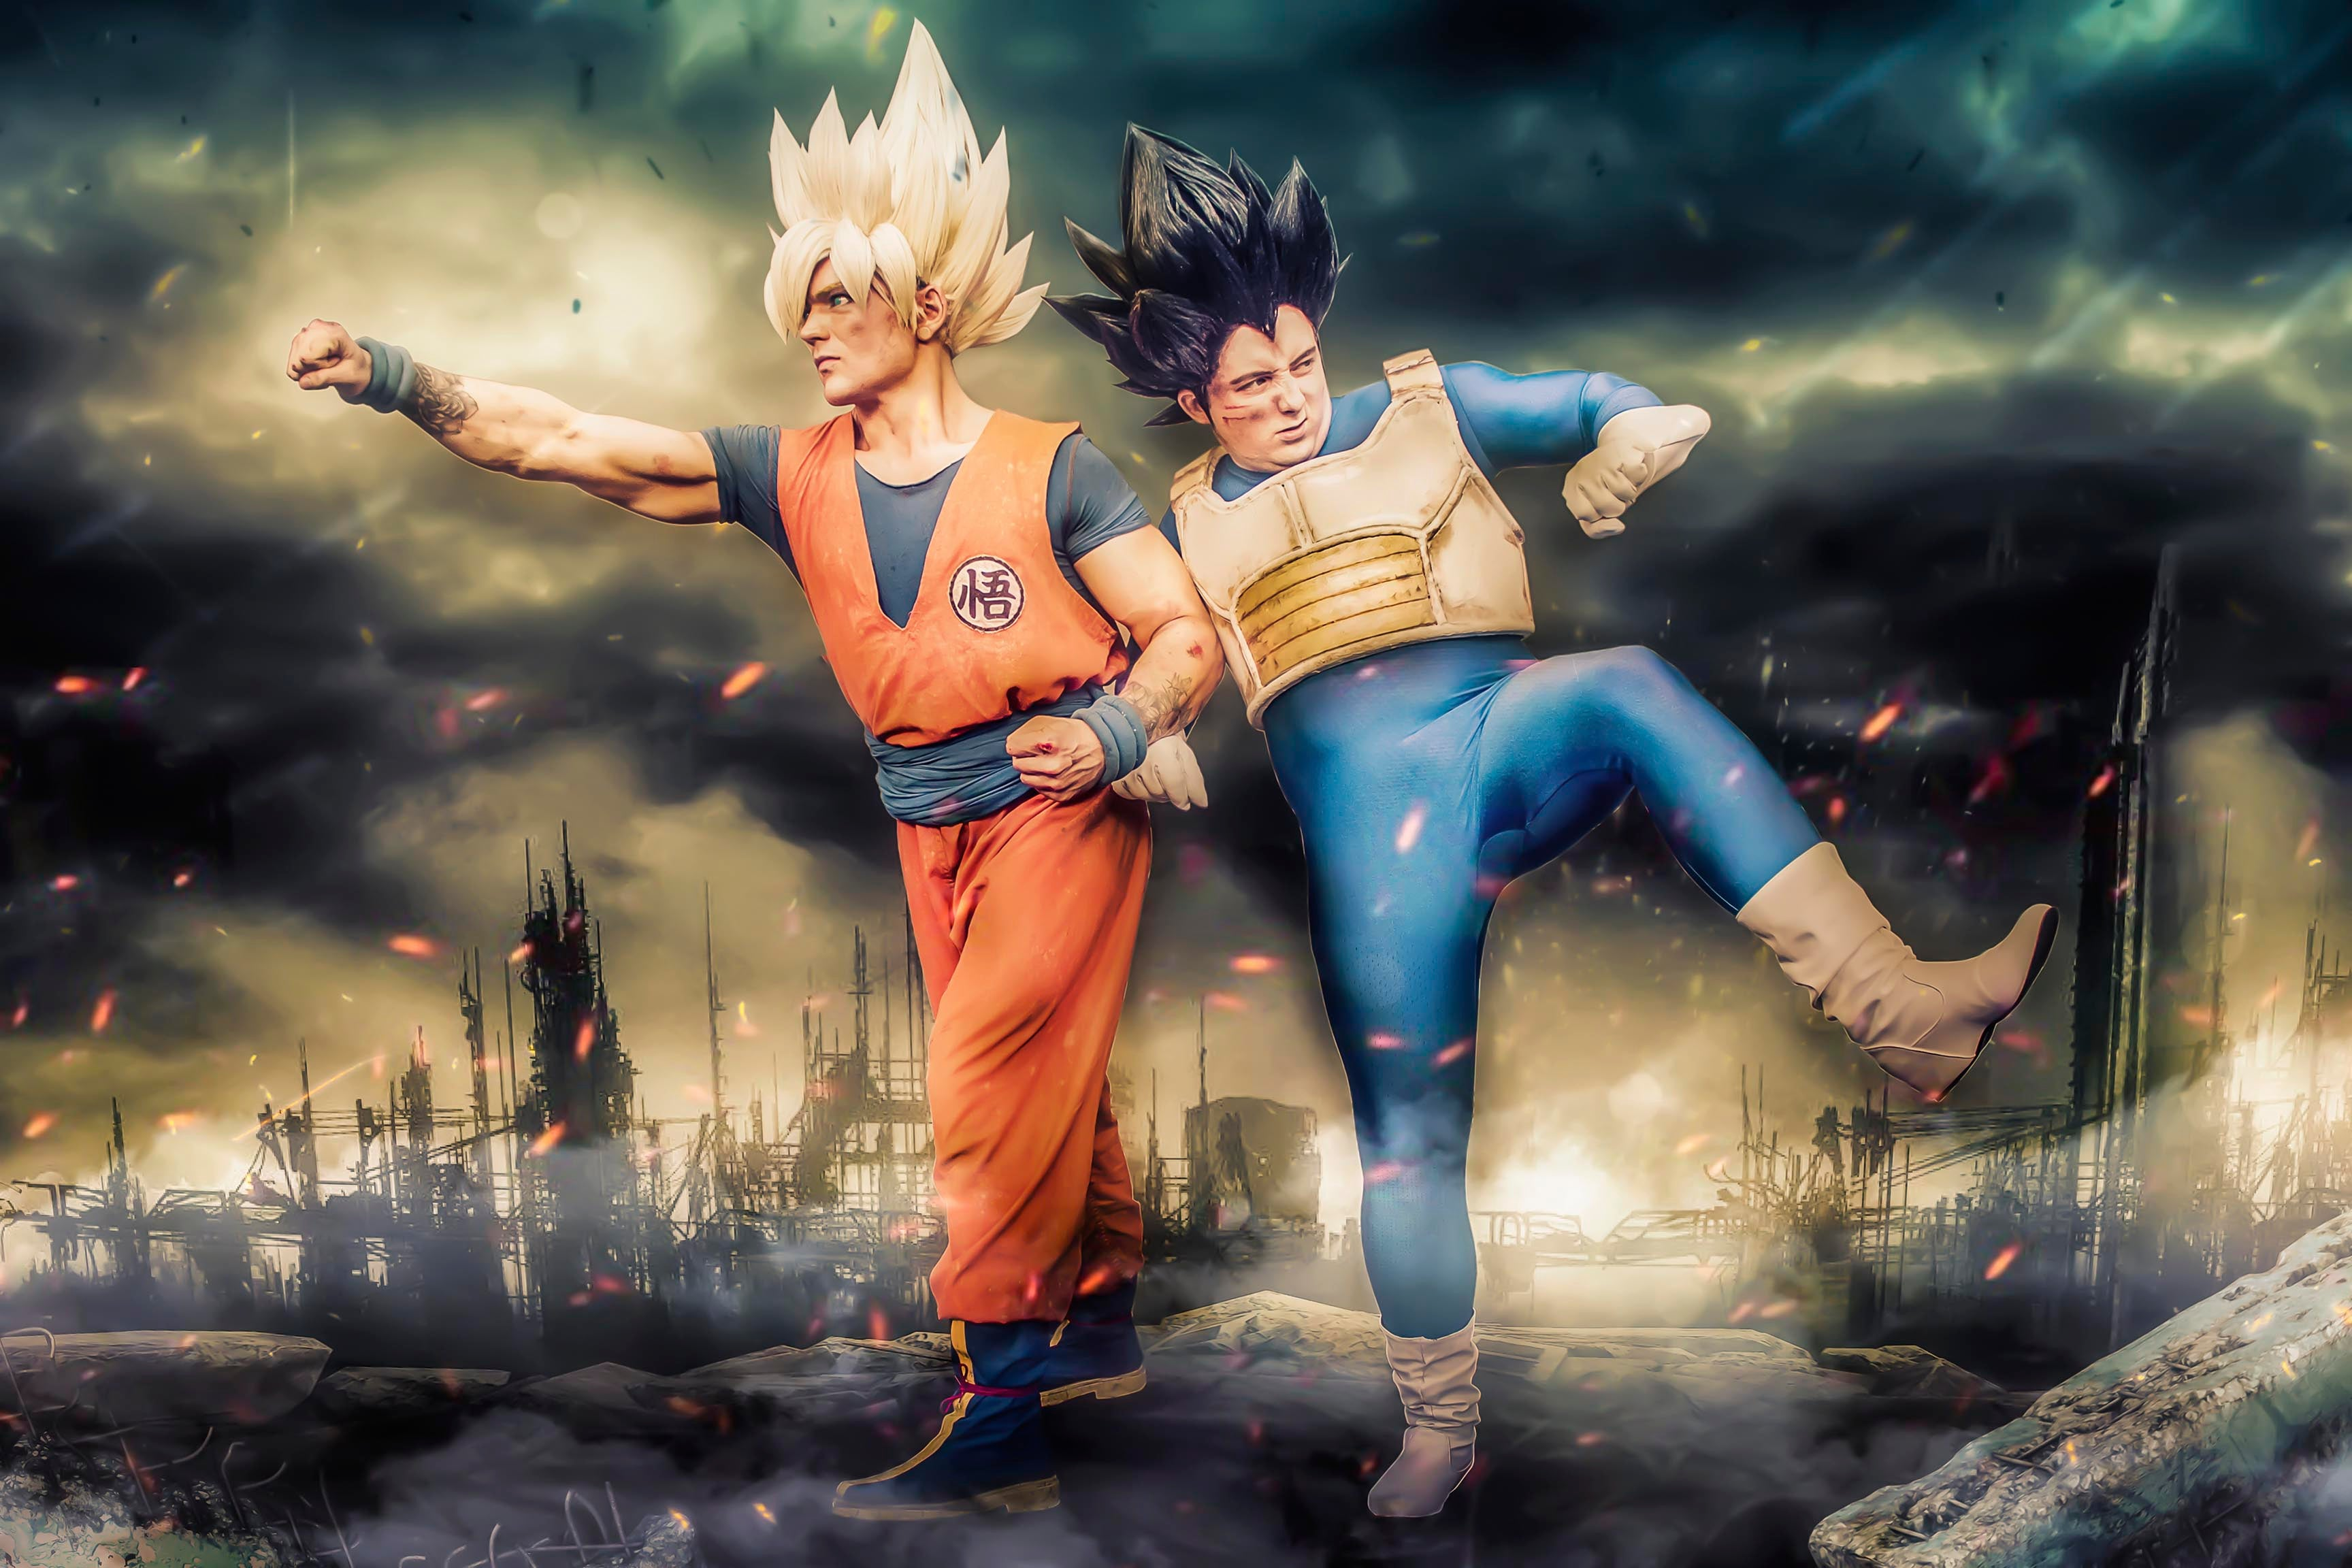 Goku and Vegeta cosplay from DragonBall Z